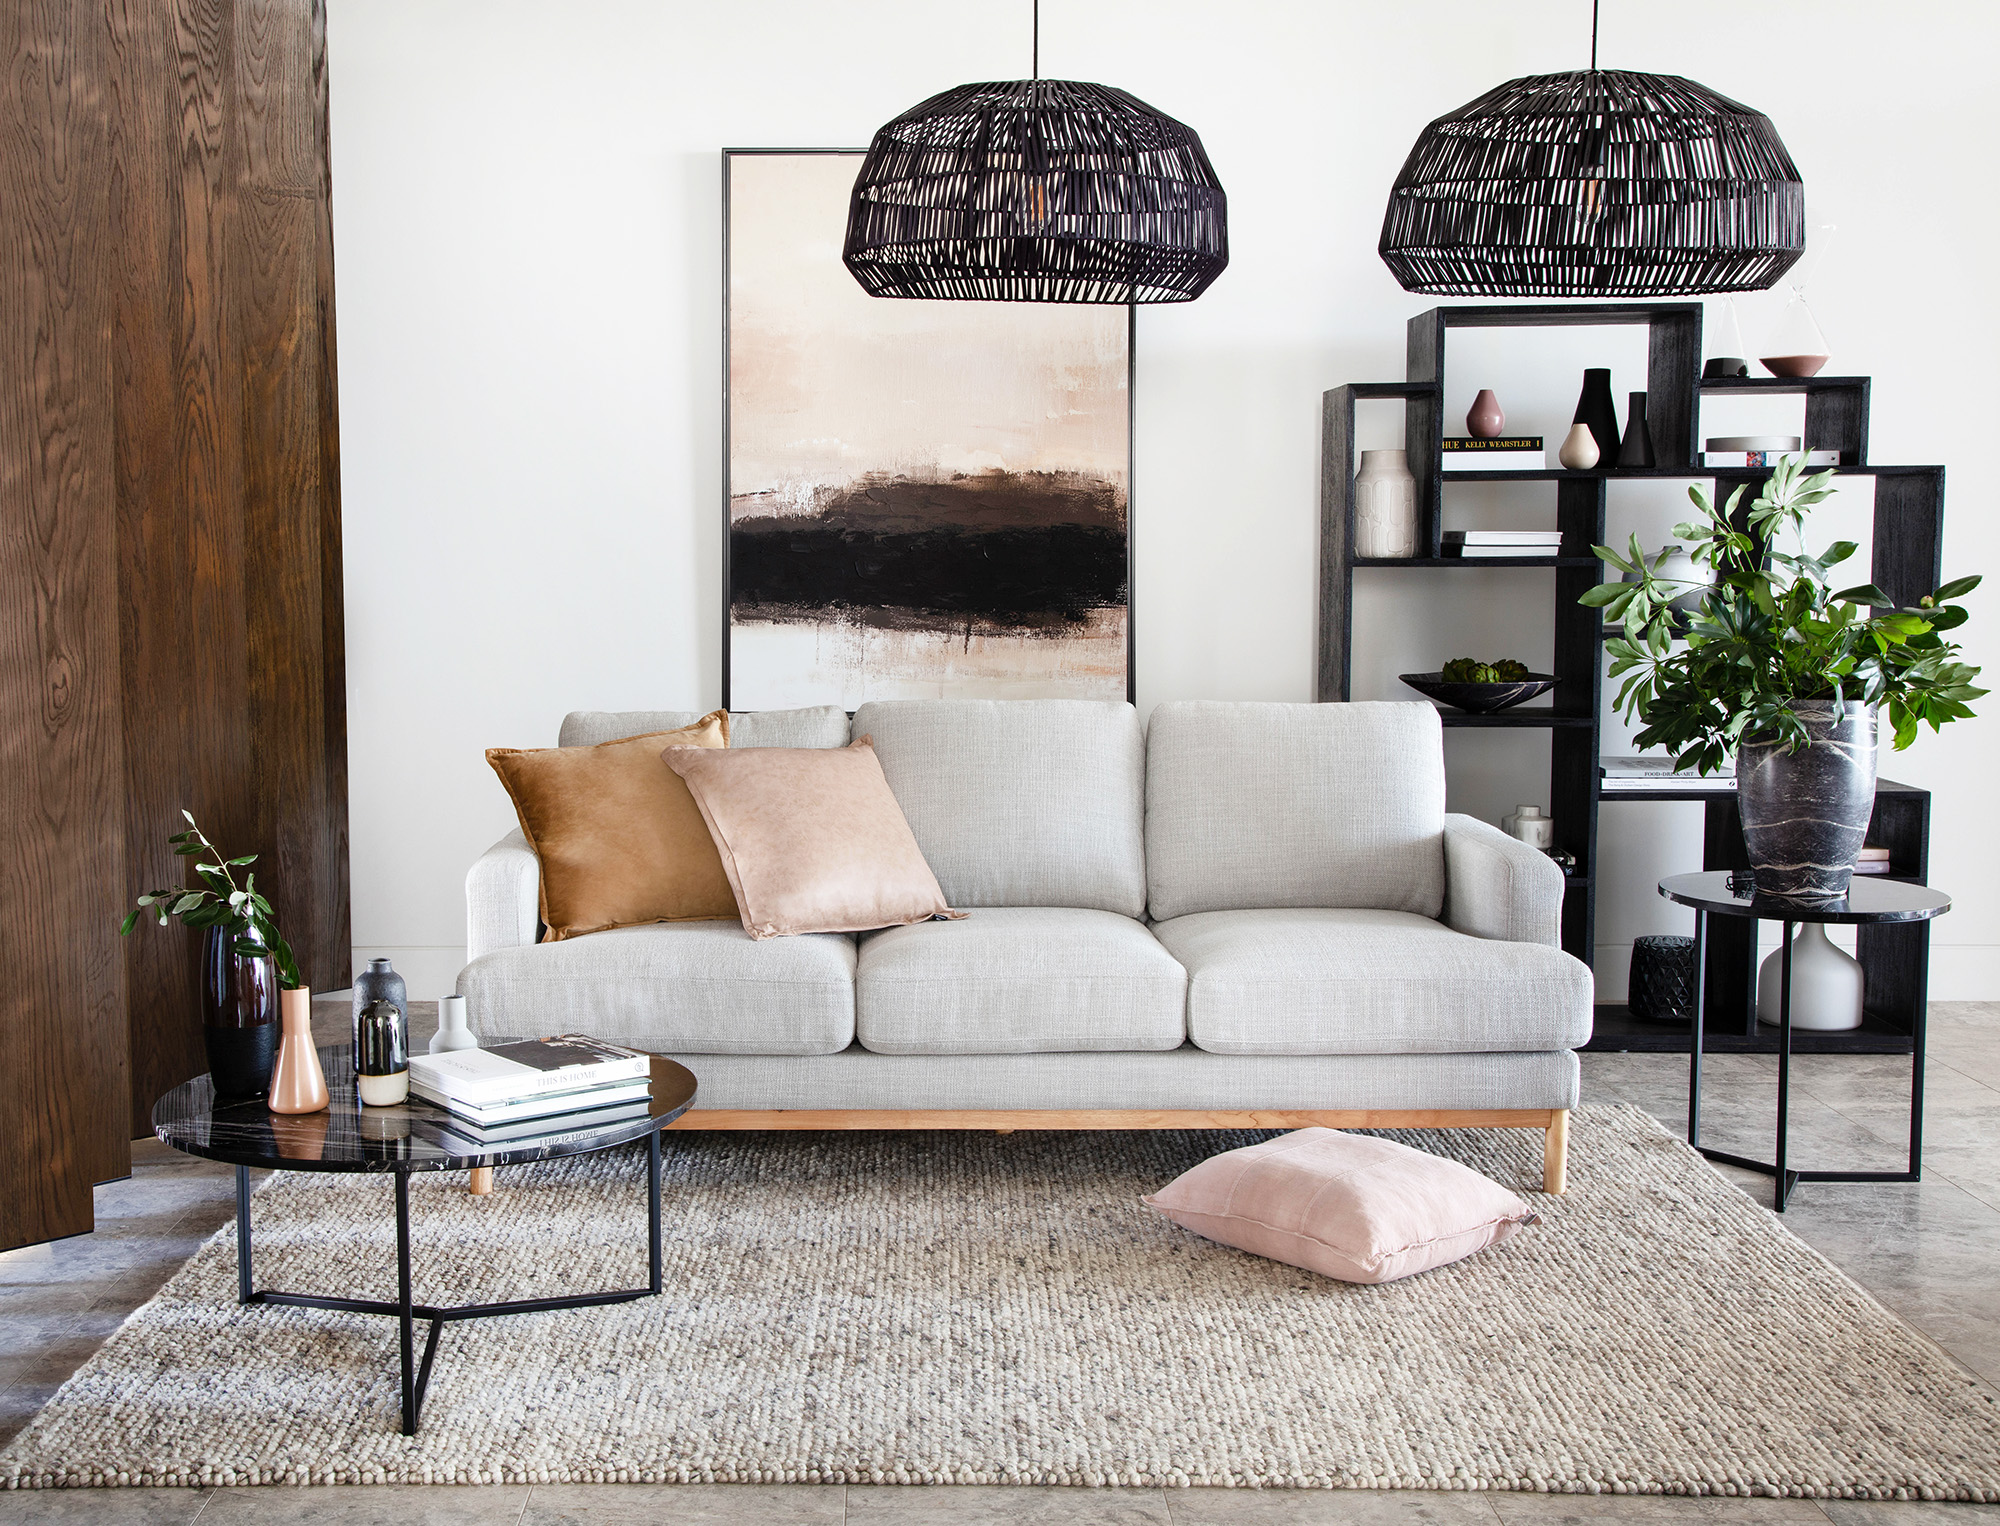 Pictured: Atticus 3 seater sofa, Union coffee and side tables, Porto bookcase, Natural Abstract art.